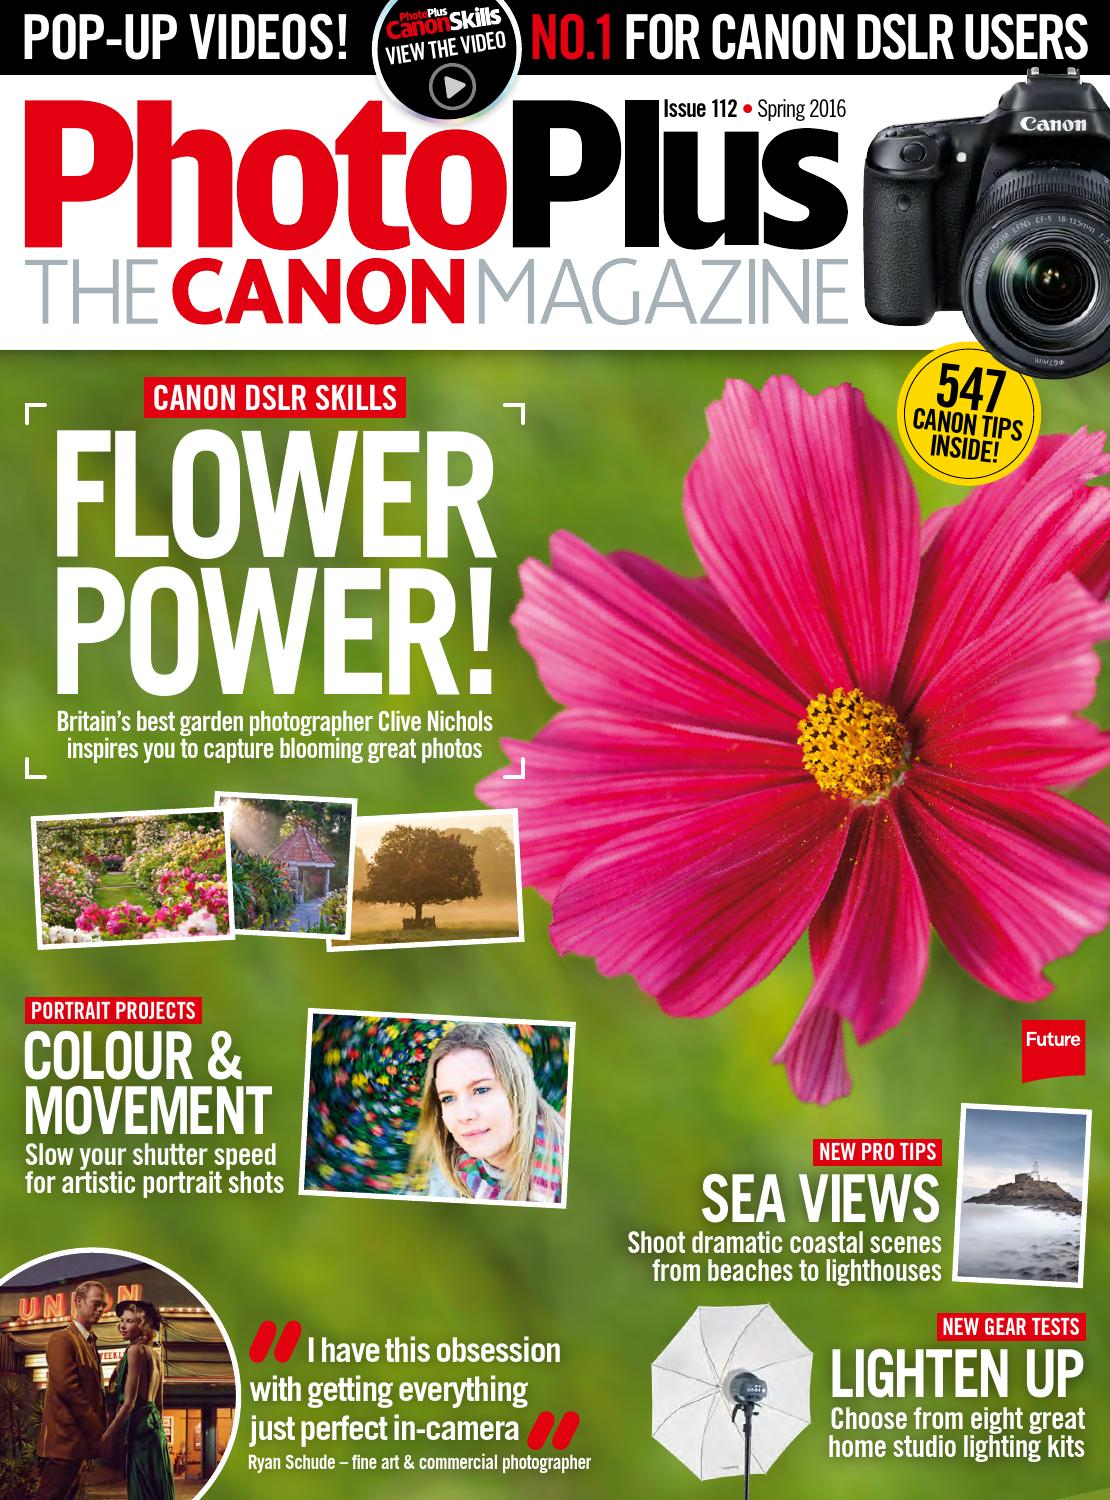 Photography magazines for canon users Alaska's List : Alaska Recreational Property For Sale